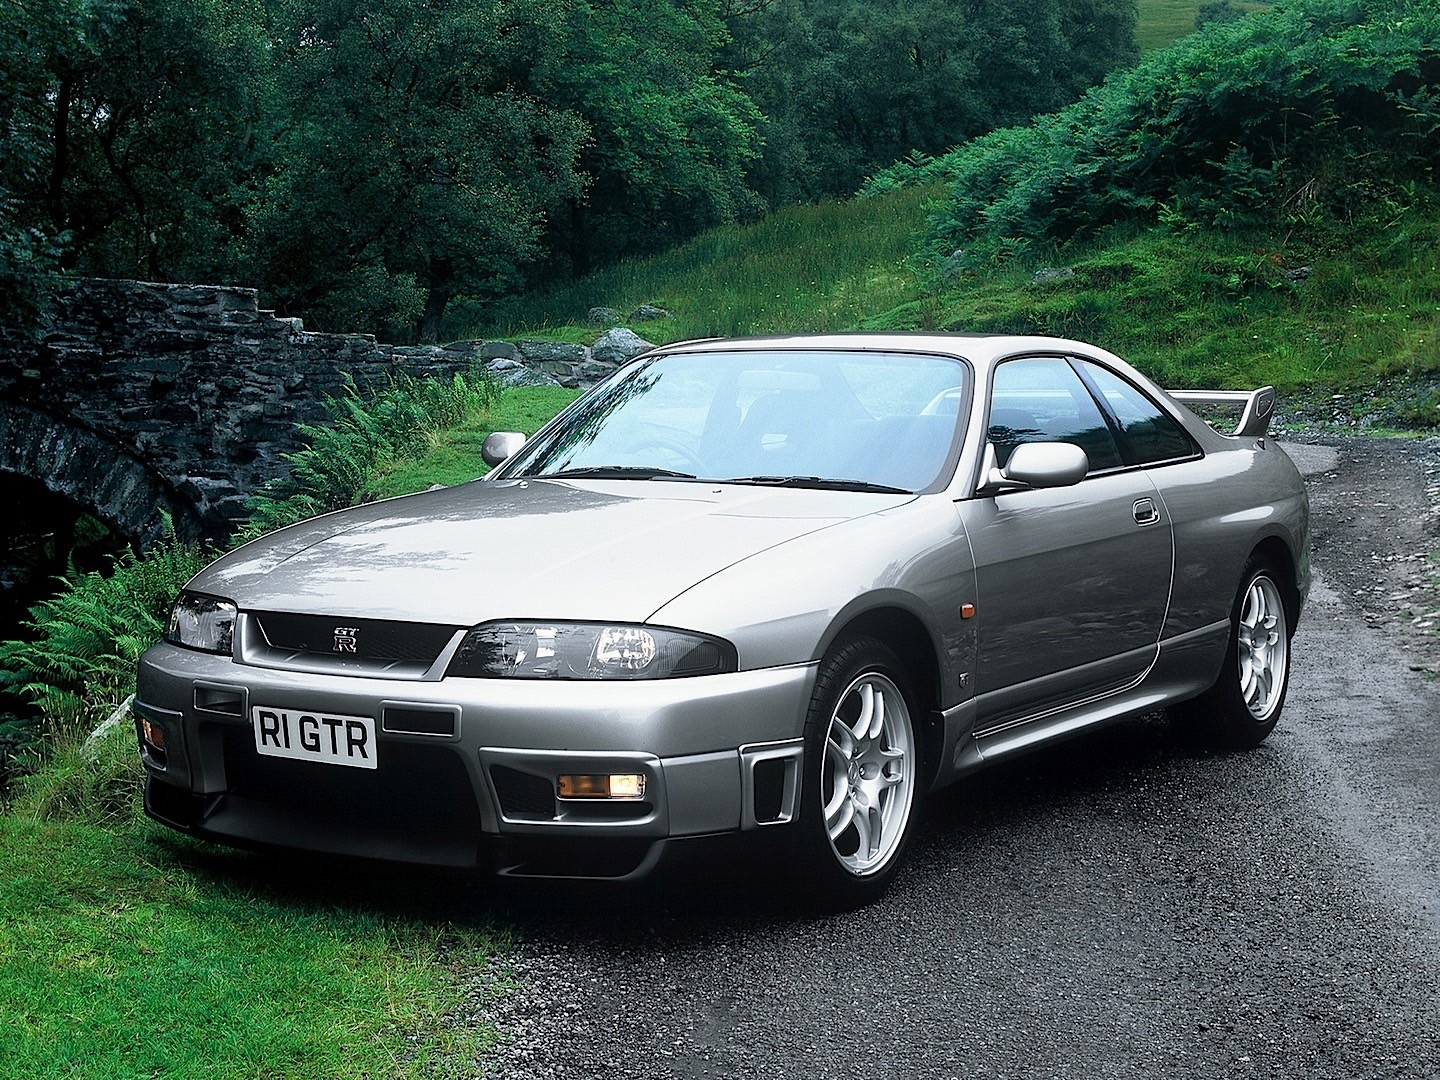 nissan skyline gt r v spec r33 specs 1995 1996 1997 1998 autoevolution. Black Bedroom Furniture Sets. Home Design Ideas